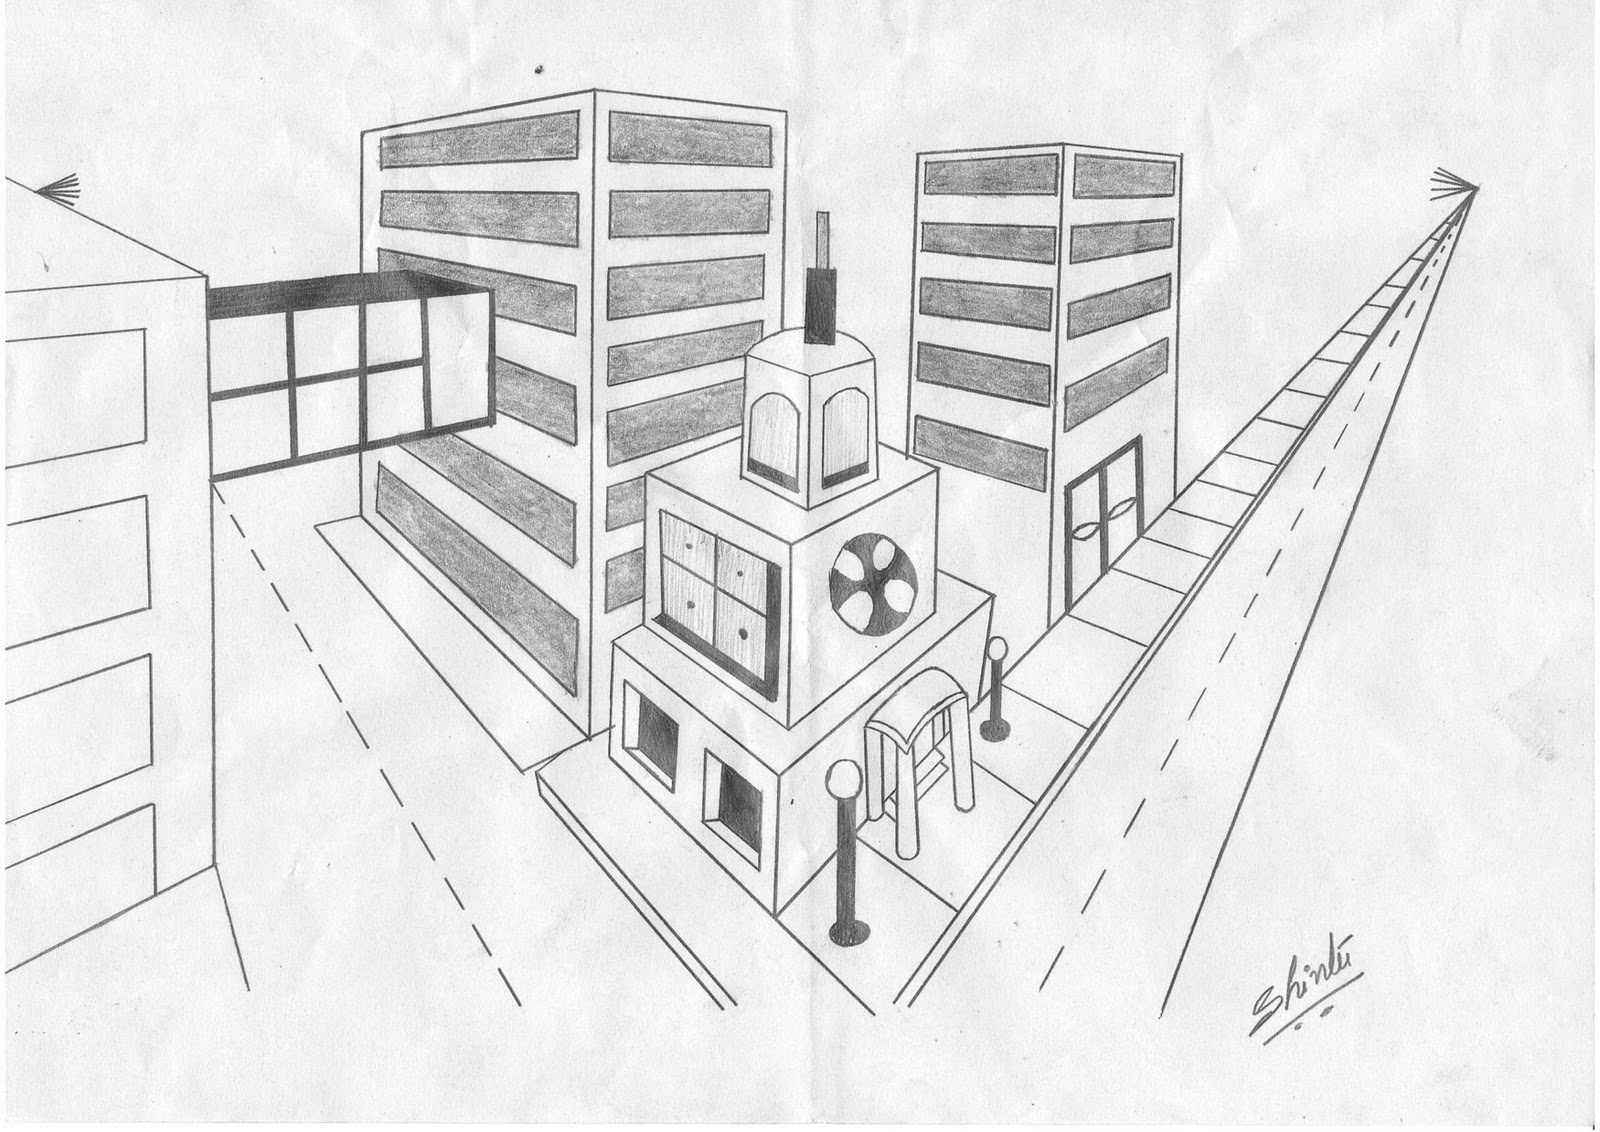 Perspective Perspective Drawing And Modern Buildings